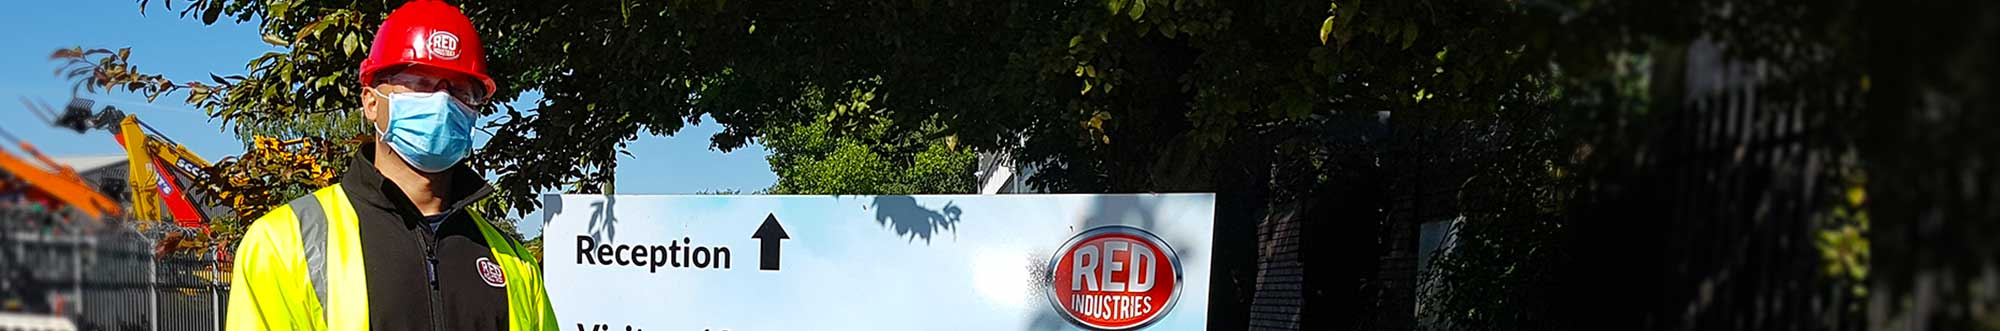 Red Industries Customer Service